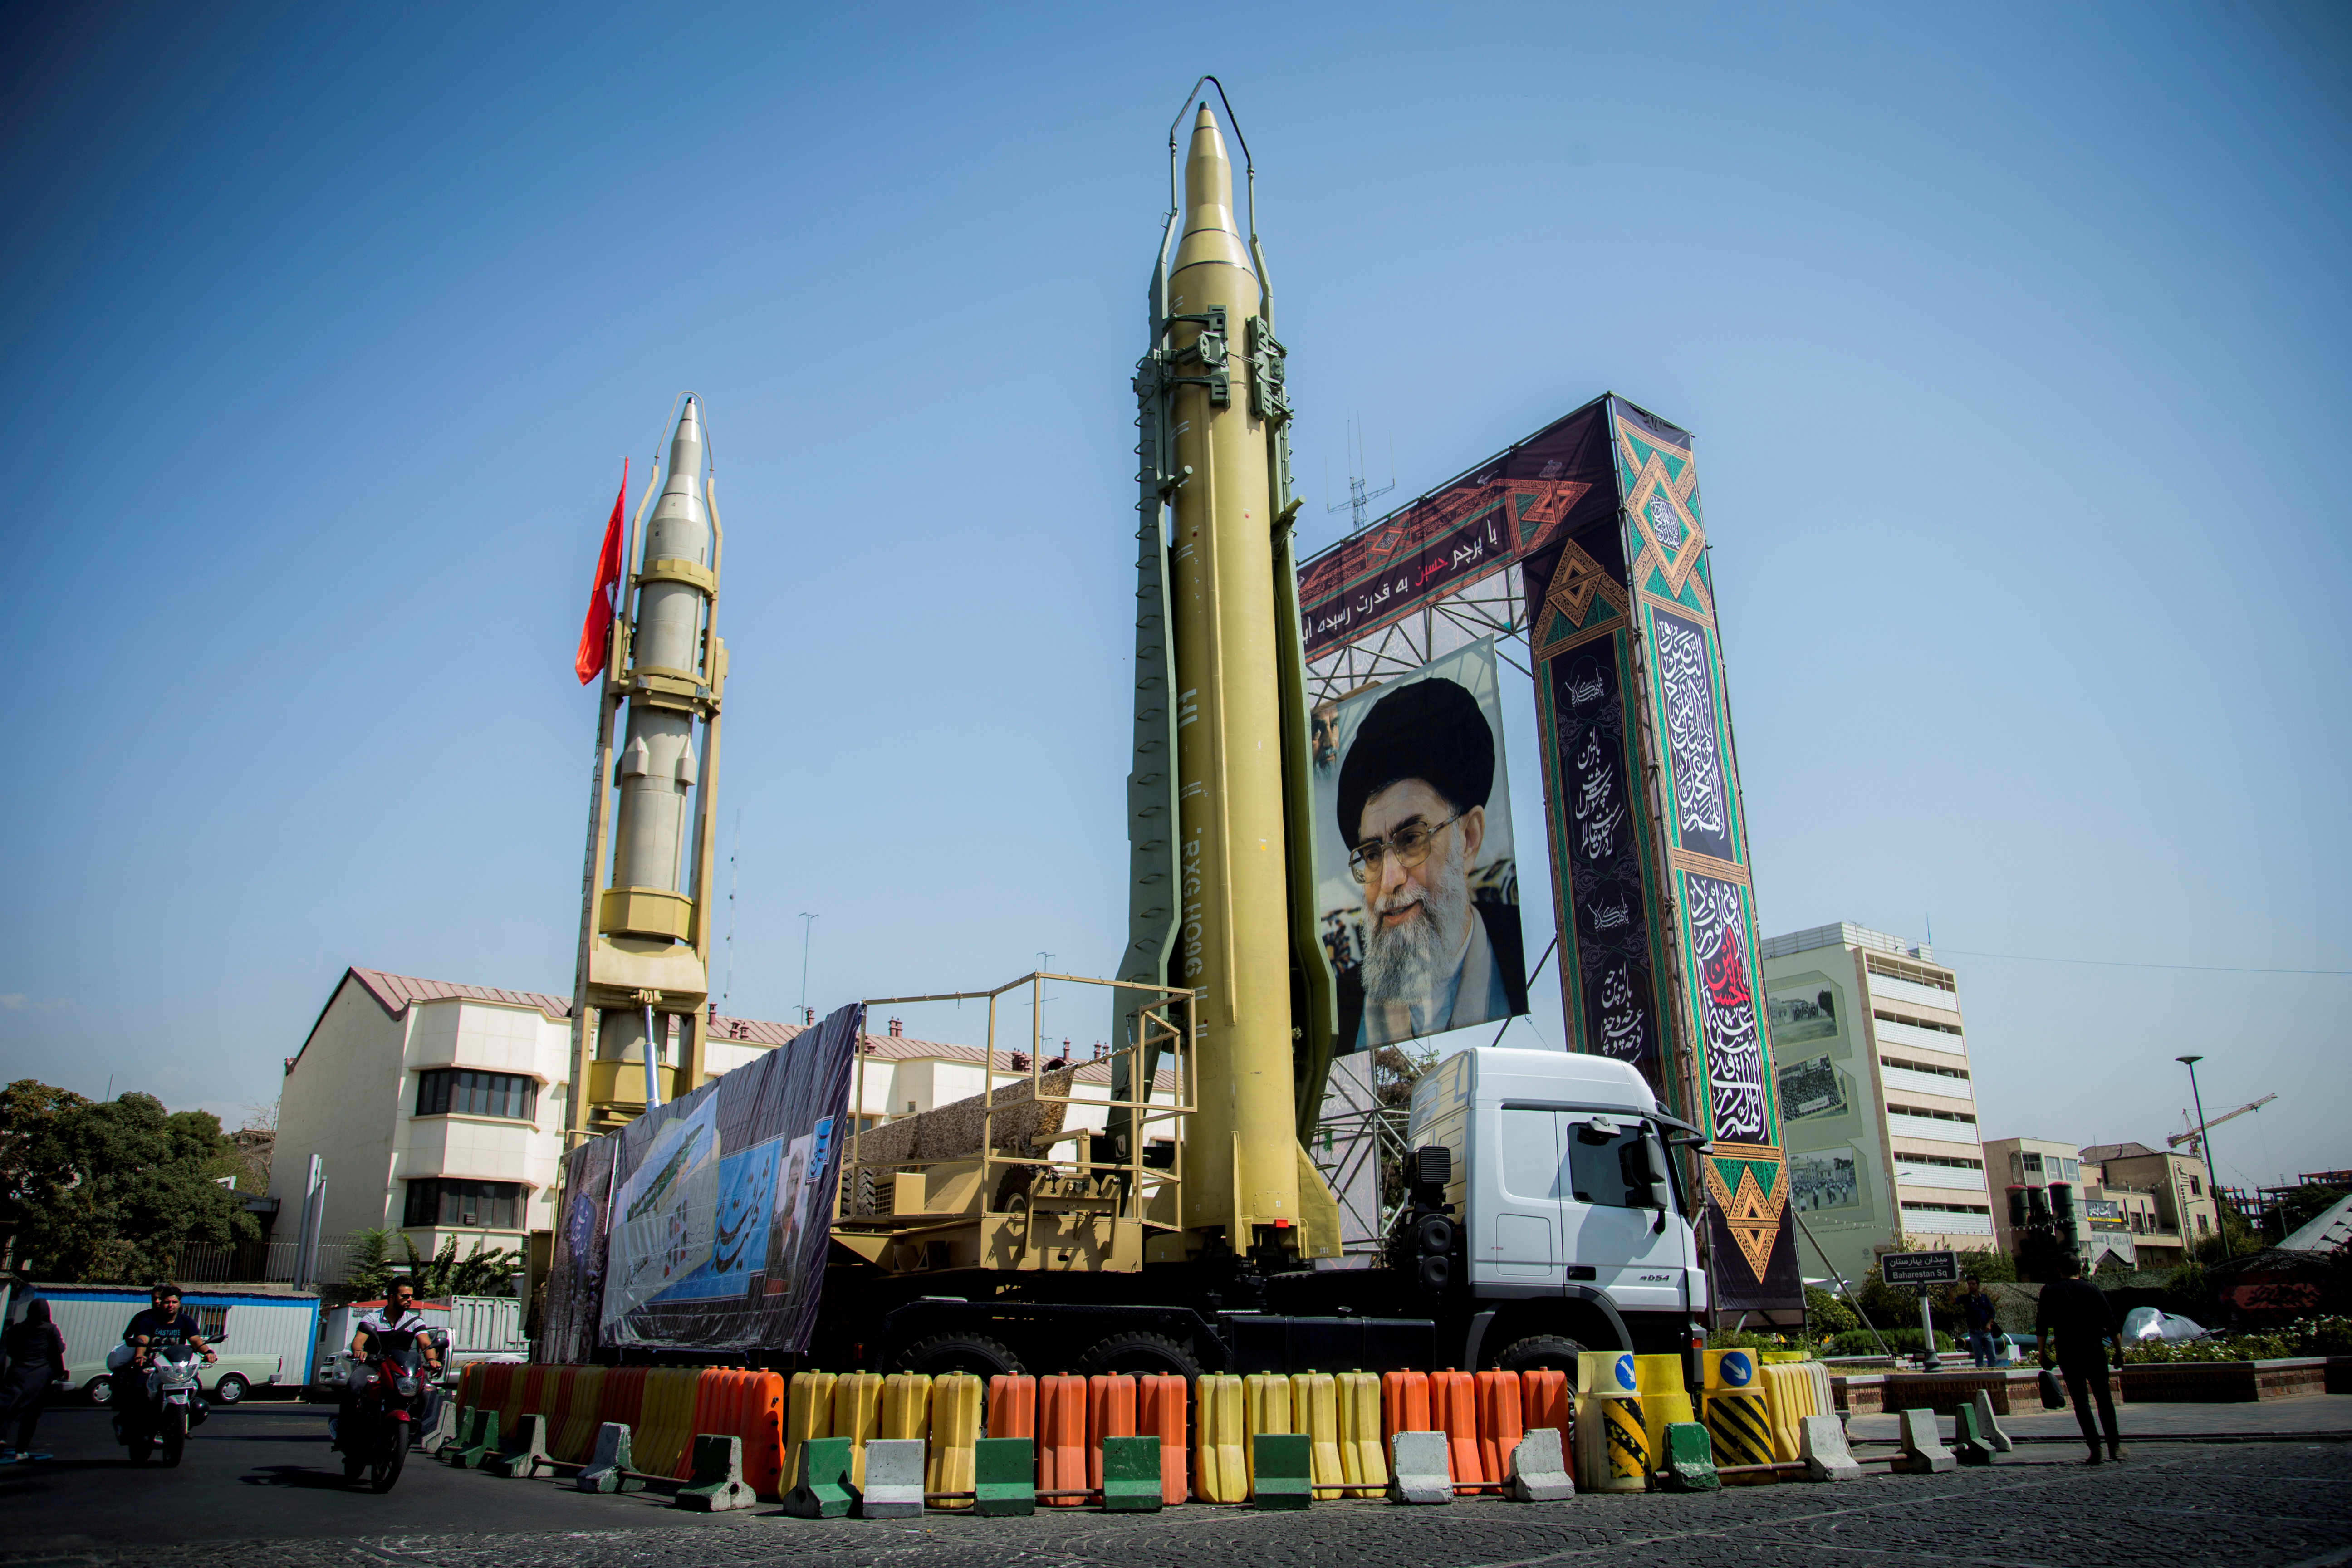 FILE PHOTO: A display featuring missiles and a portrait of Iran's Supreme Leader Ayatollah Ali Khamenei is seen at Baharestan Square in Tehran, Iran September 27, 2017. Picture taken September 27, 2017. Nazanin Tabatabaee Yazdi/TIMA via REUTERS